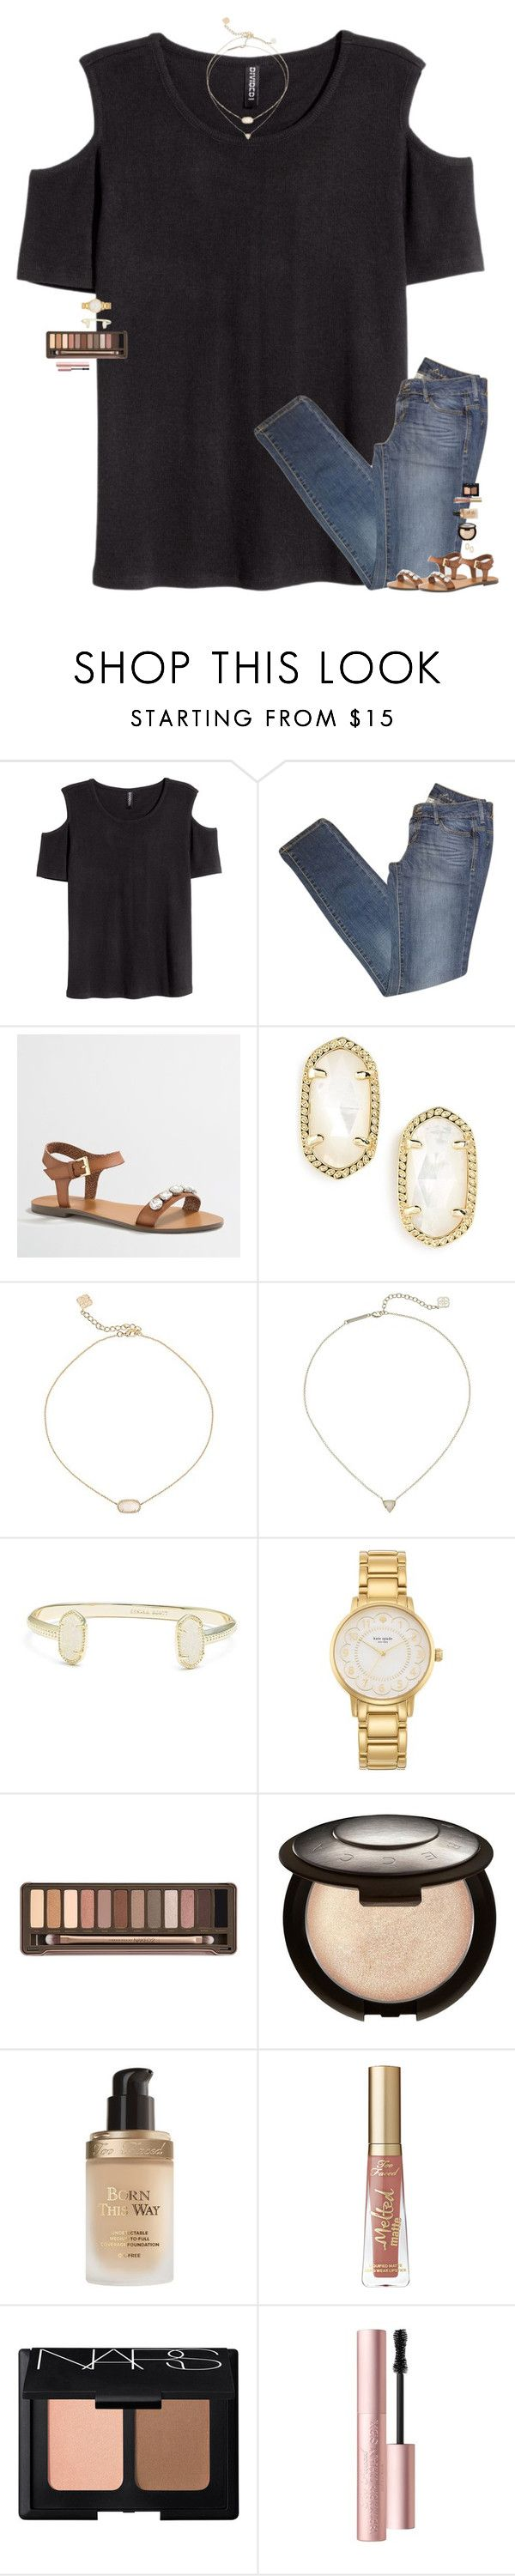 """""""she didn't want a million admirers, she just wanted one."""" by maggie-prep ❤ liked on Polyvore featuring H&M, MANGO, J.Crew, Kendra Scott, Kate Spade, Urban Decay, Becca, Too Faced Cosmetics and NARS Cosmetics"""